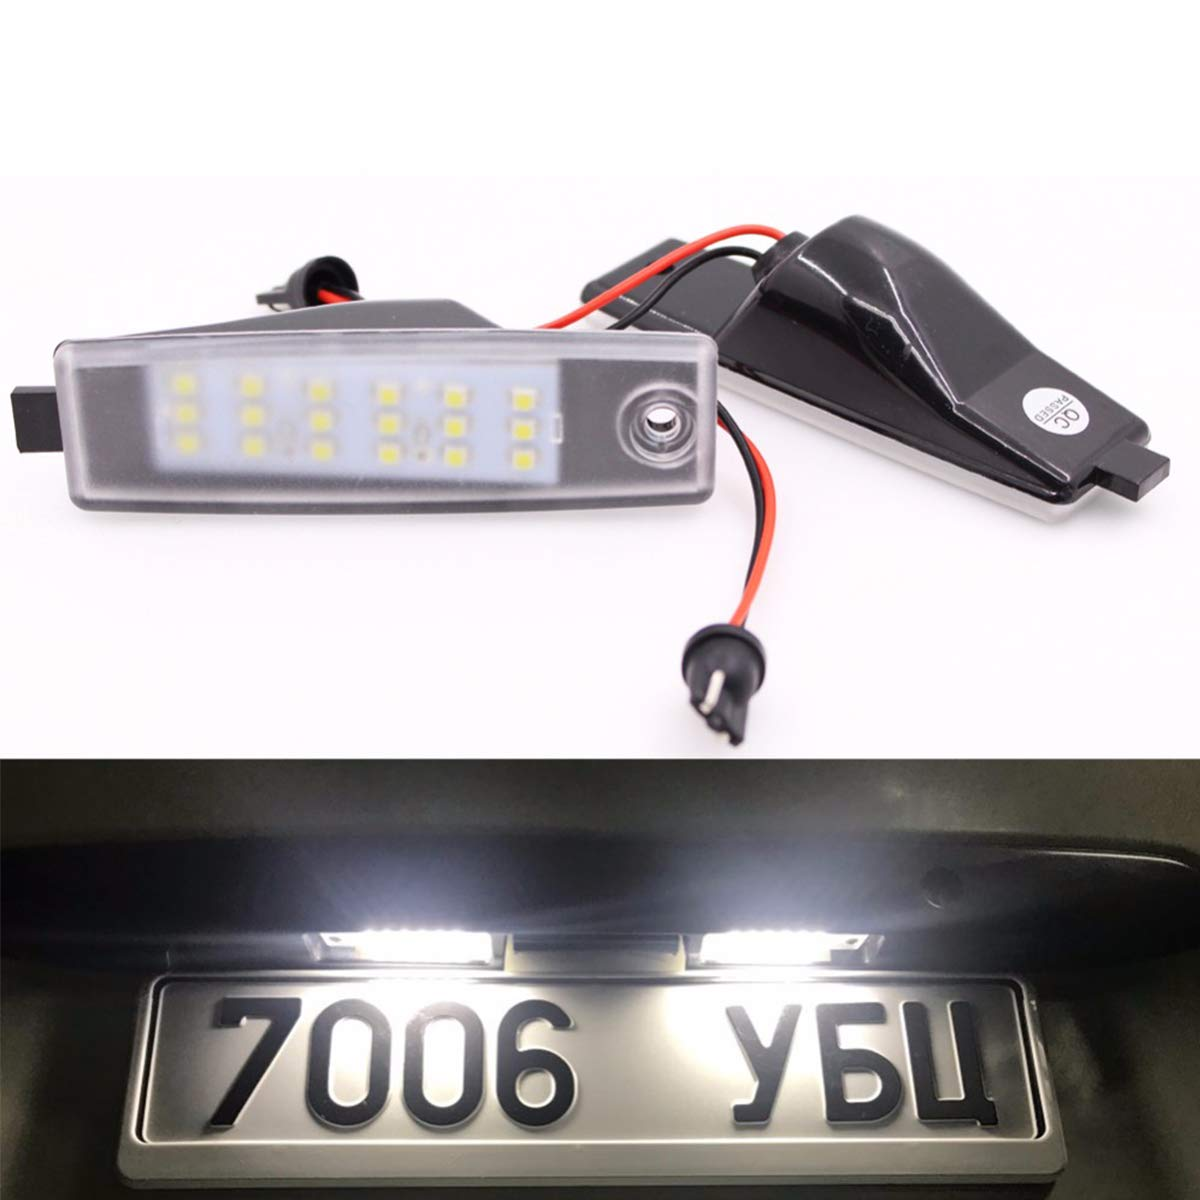 GOFORJUMP 2pcs/lot 18LED 3528SMD License Plate Light Lamp For T/oyota H/iace H200 2004-2012, V/anguard A/CA33W 2005-2010 Bright White